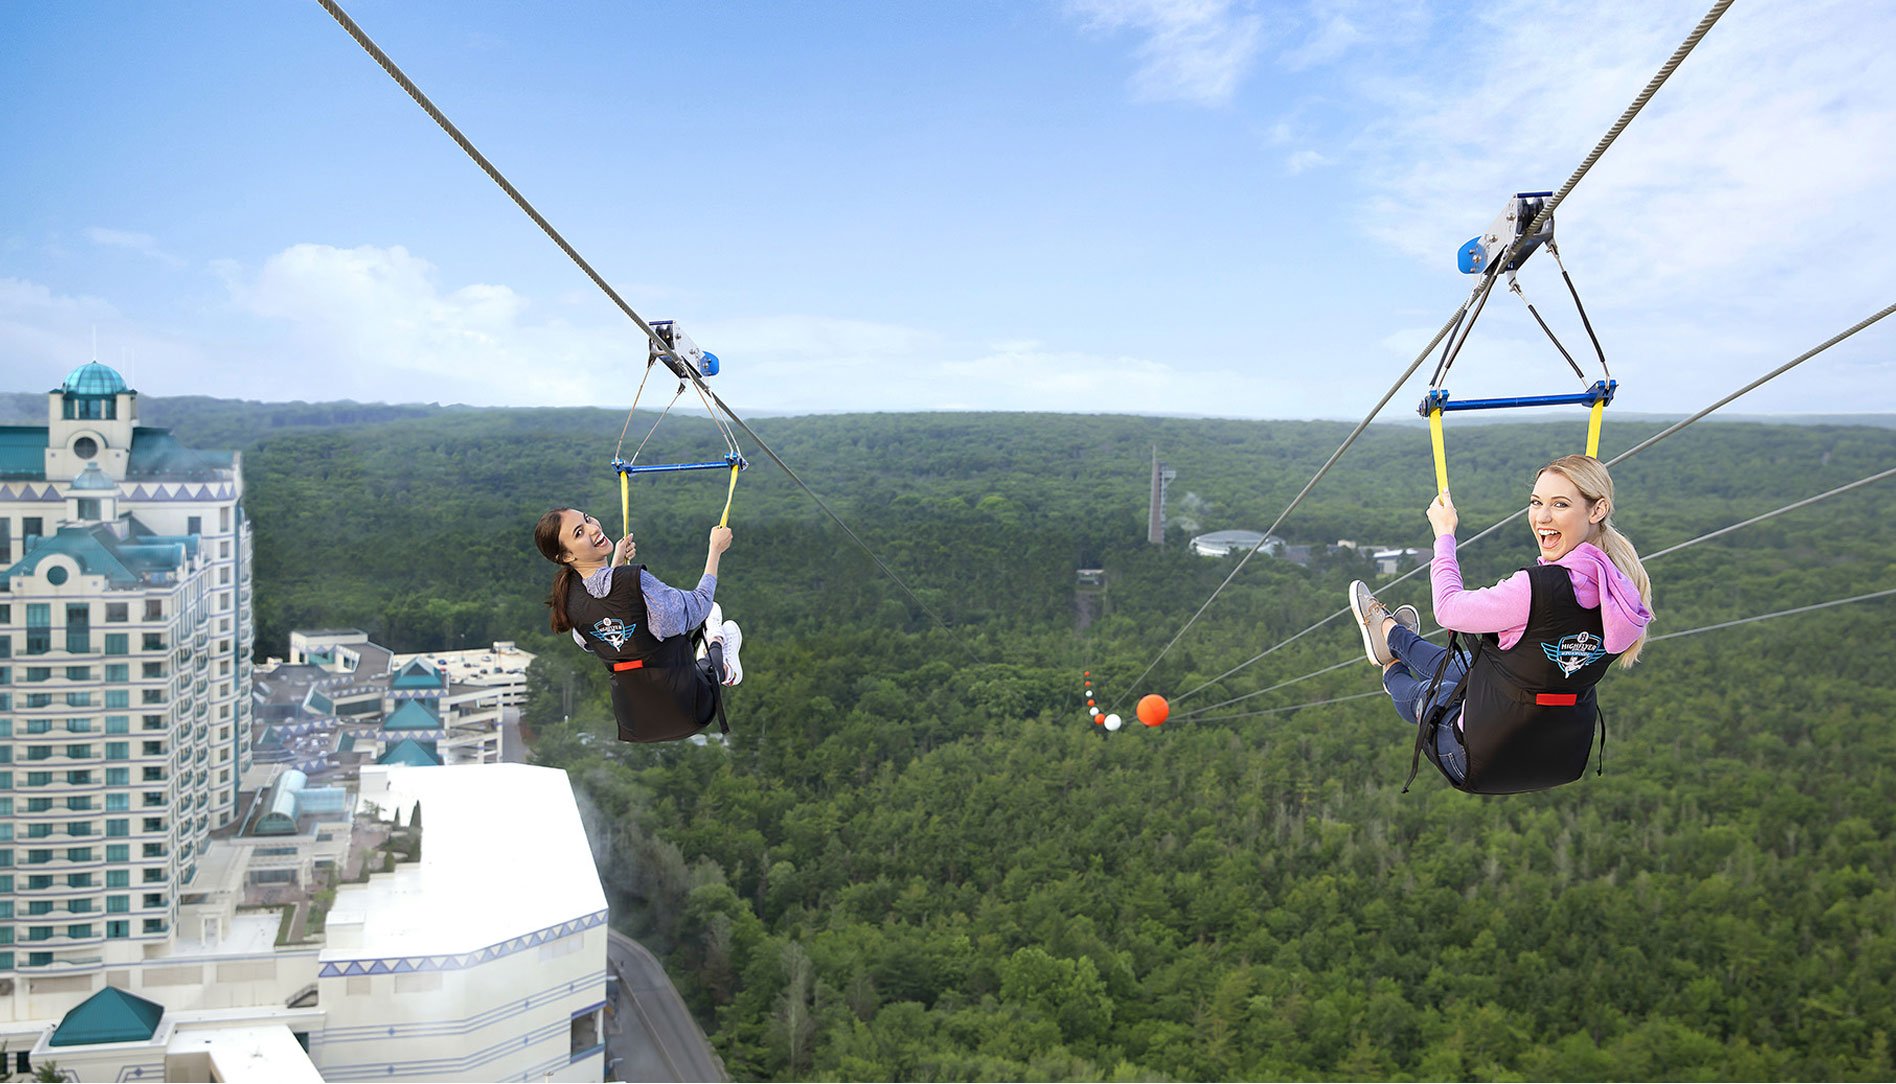 HIGHFLYER ZIPLINE